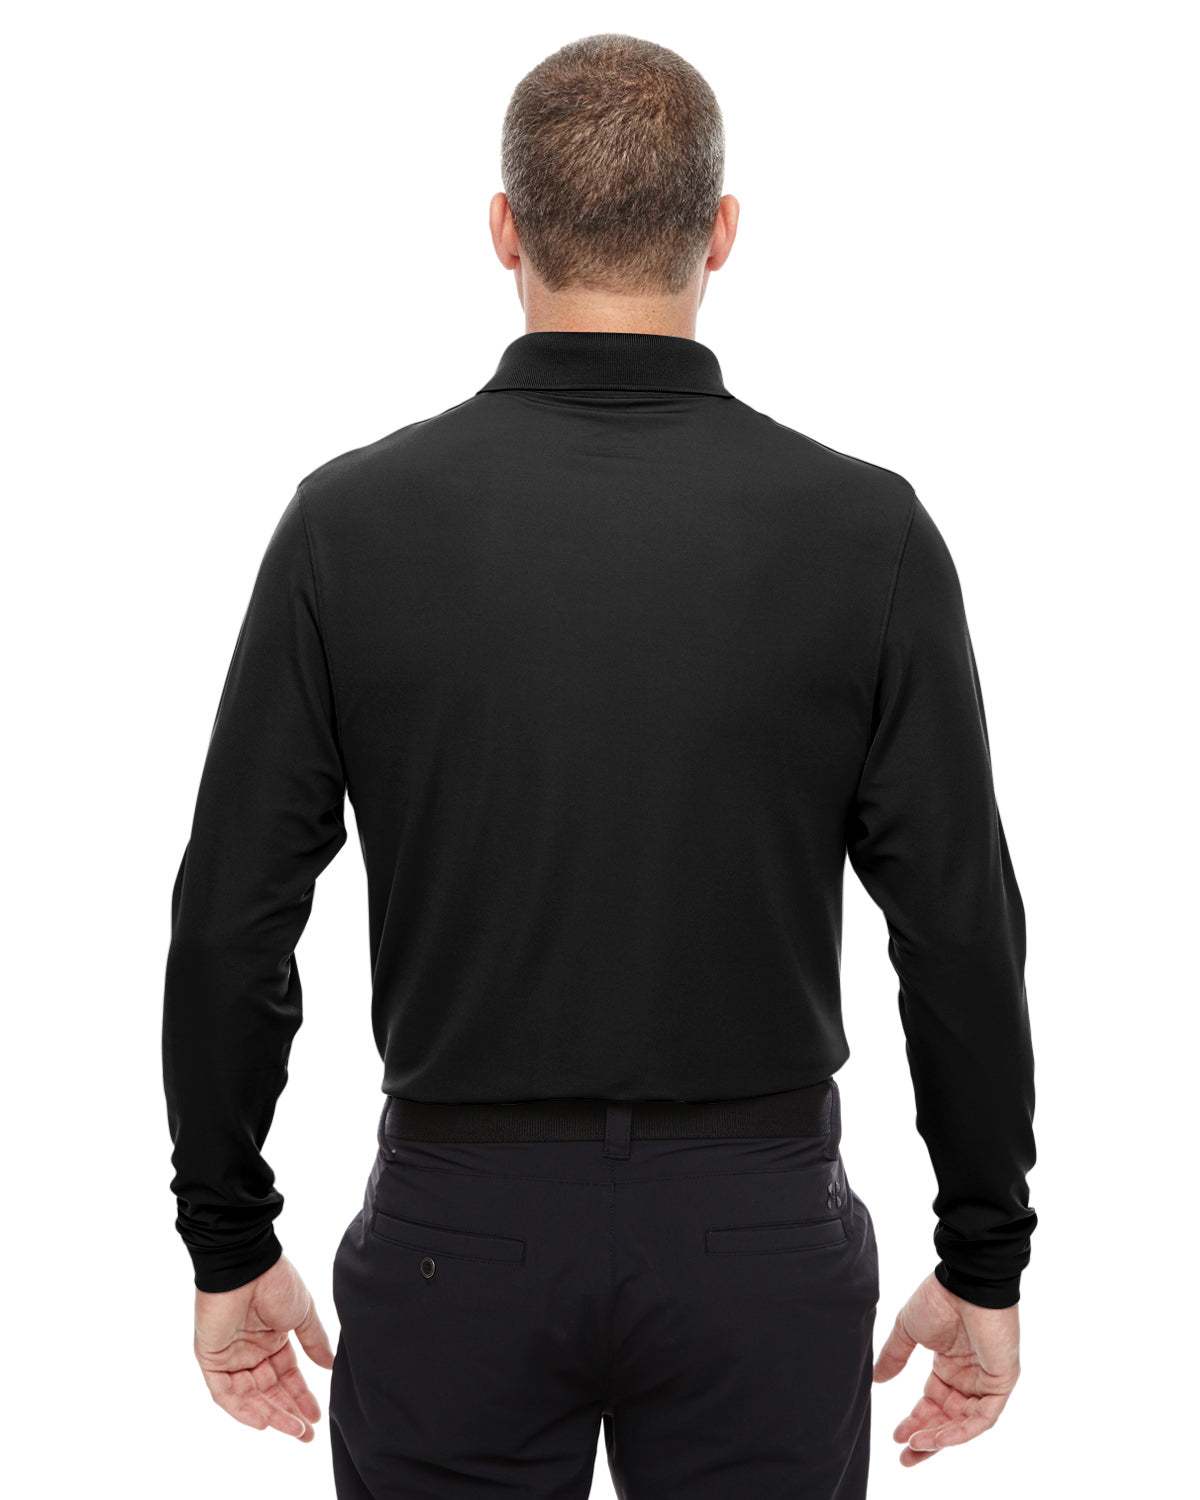 391f0054 UNDER ARMOUR MEN'S PERFORMANCE LONG SLEEVE POLO - ID Apparel